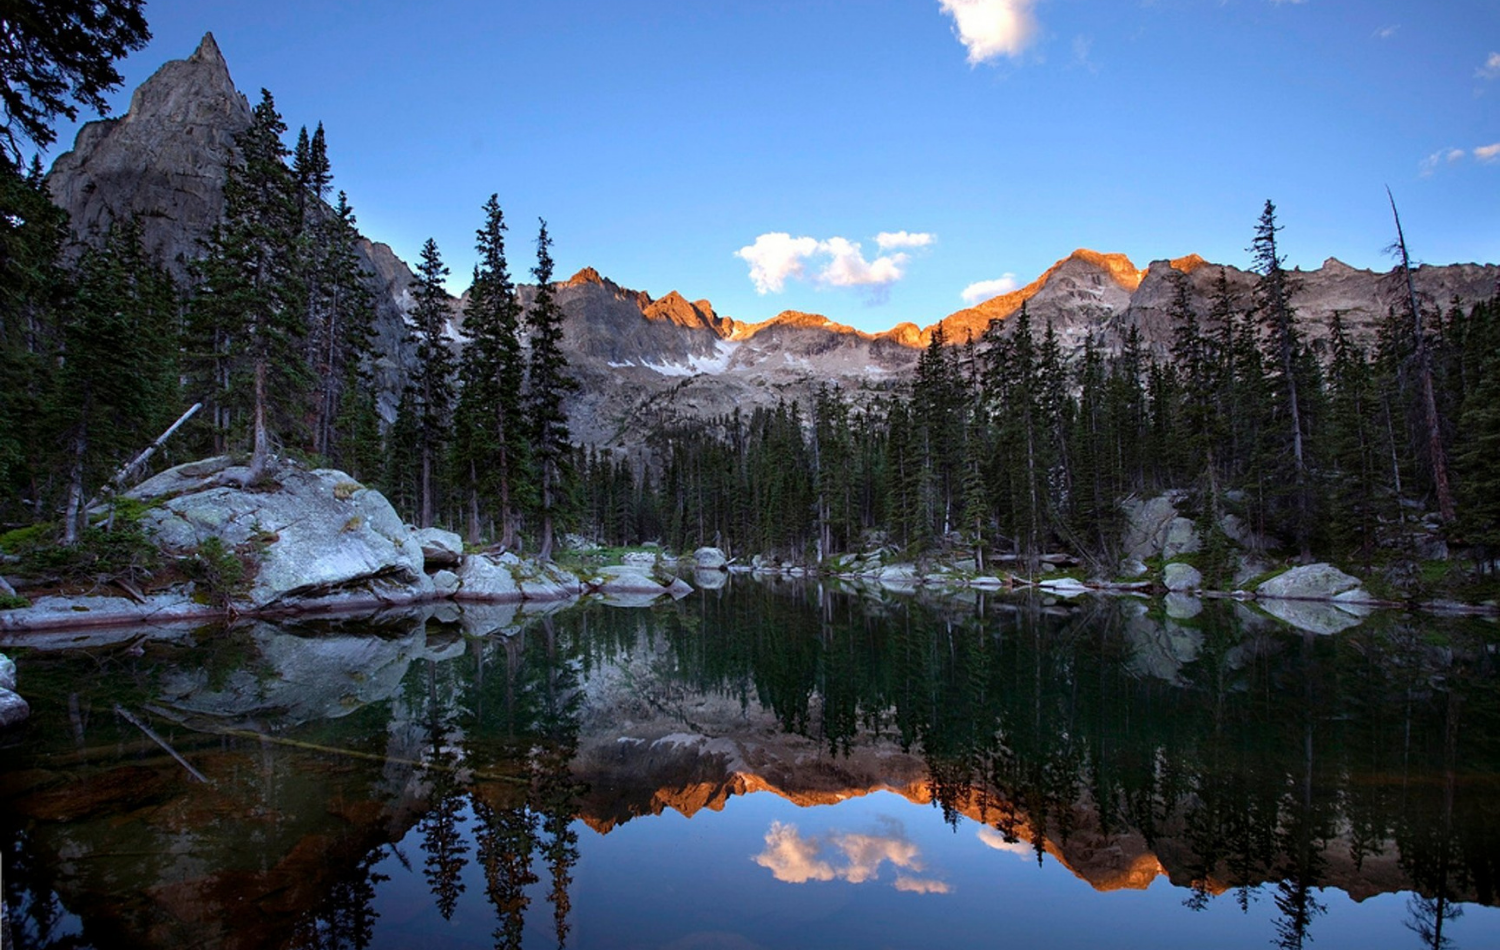 Lone-Eagle-Peak-and-Mirror-Lake-Off-Crater-Lake-Trail-near-Kremmling.-CO---Grand-County.png